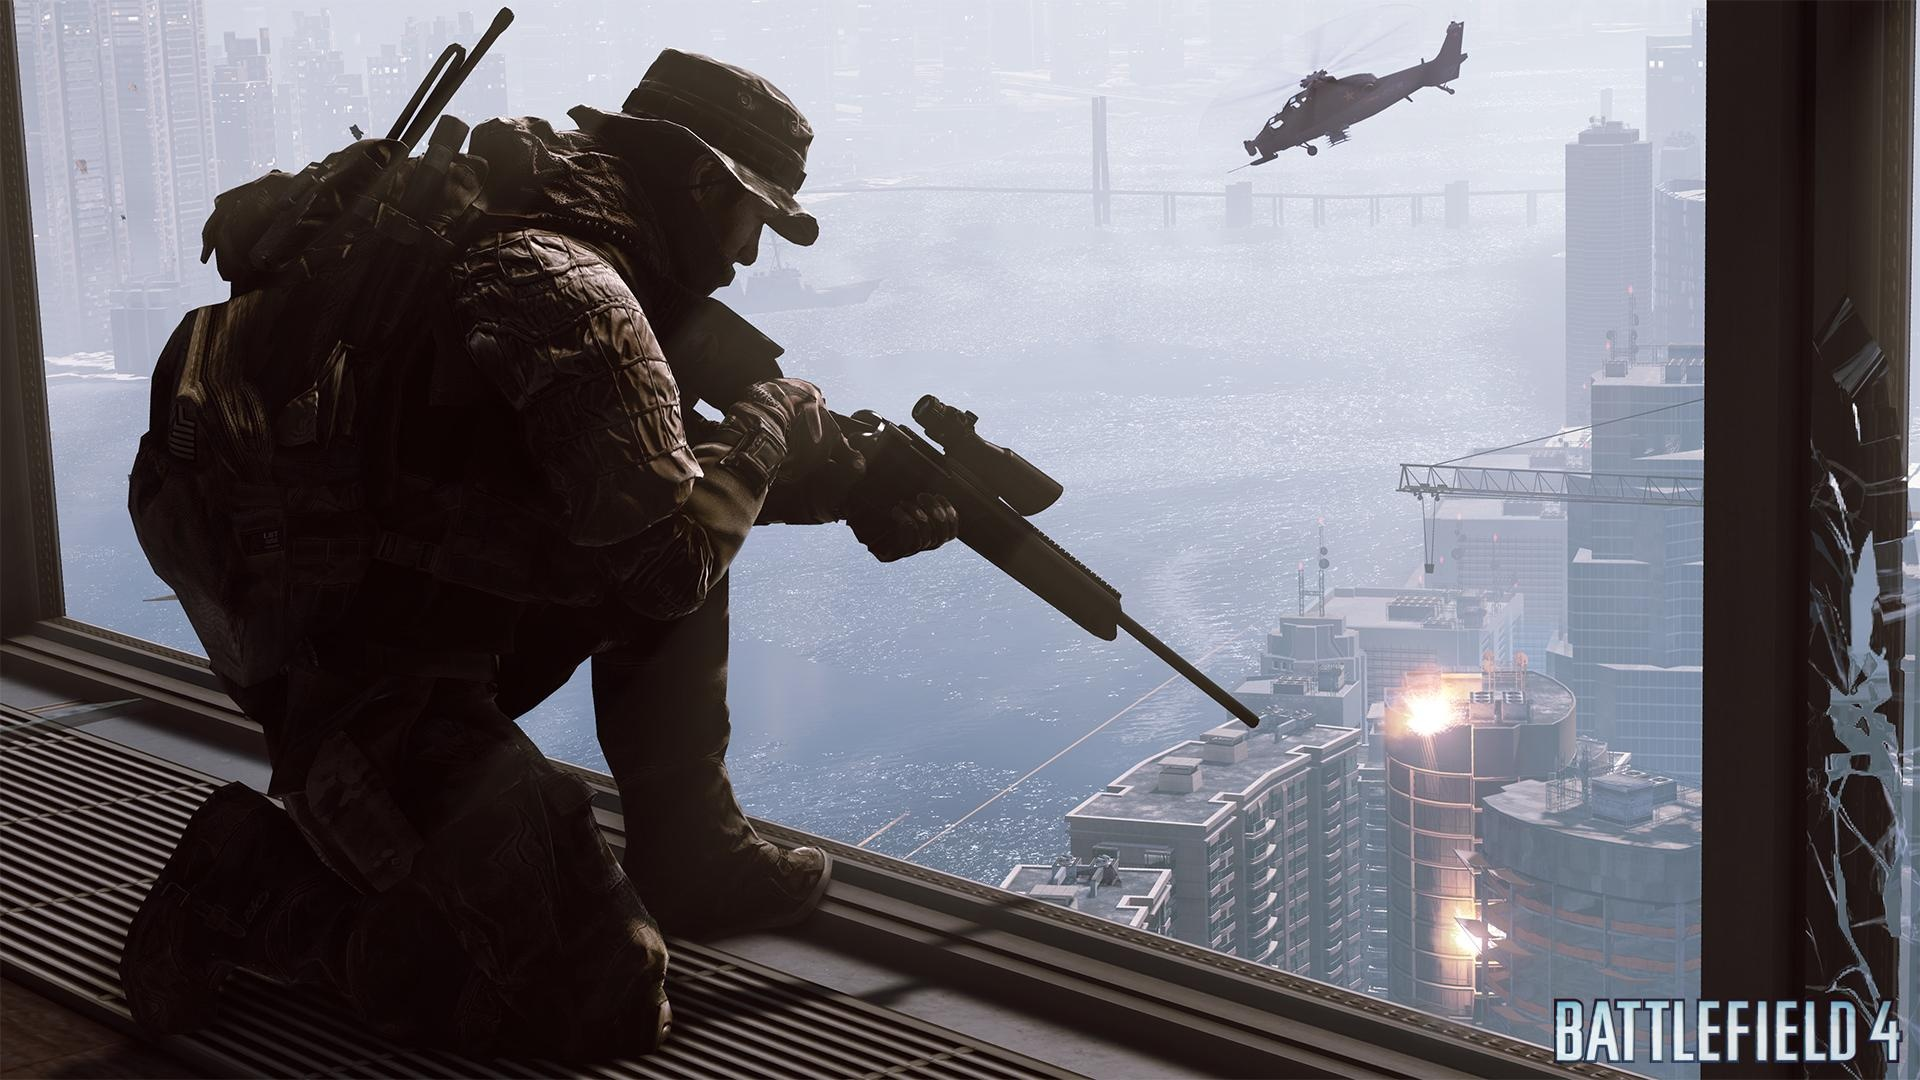 Wallpaper Battlefield 4 Sniper 1920x1080 Full HD Picture Image